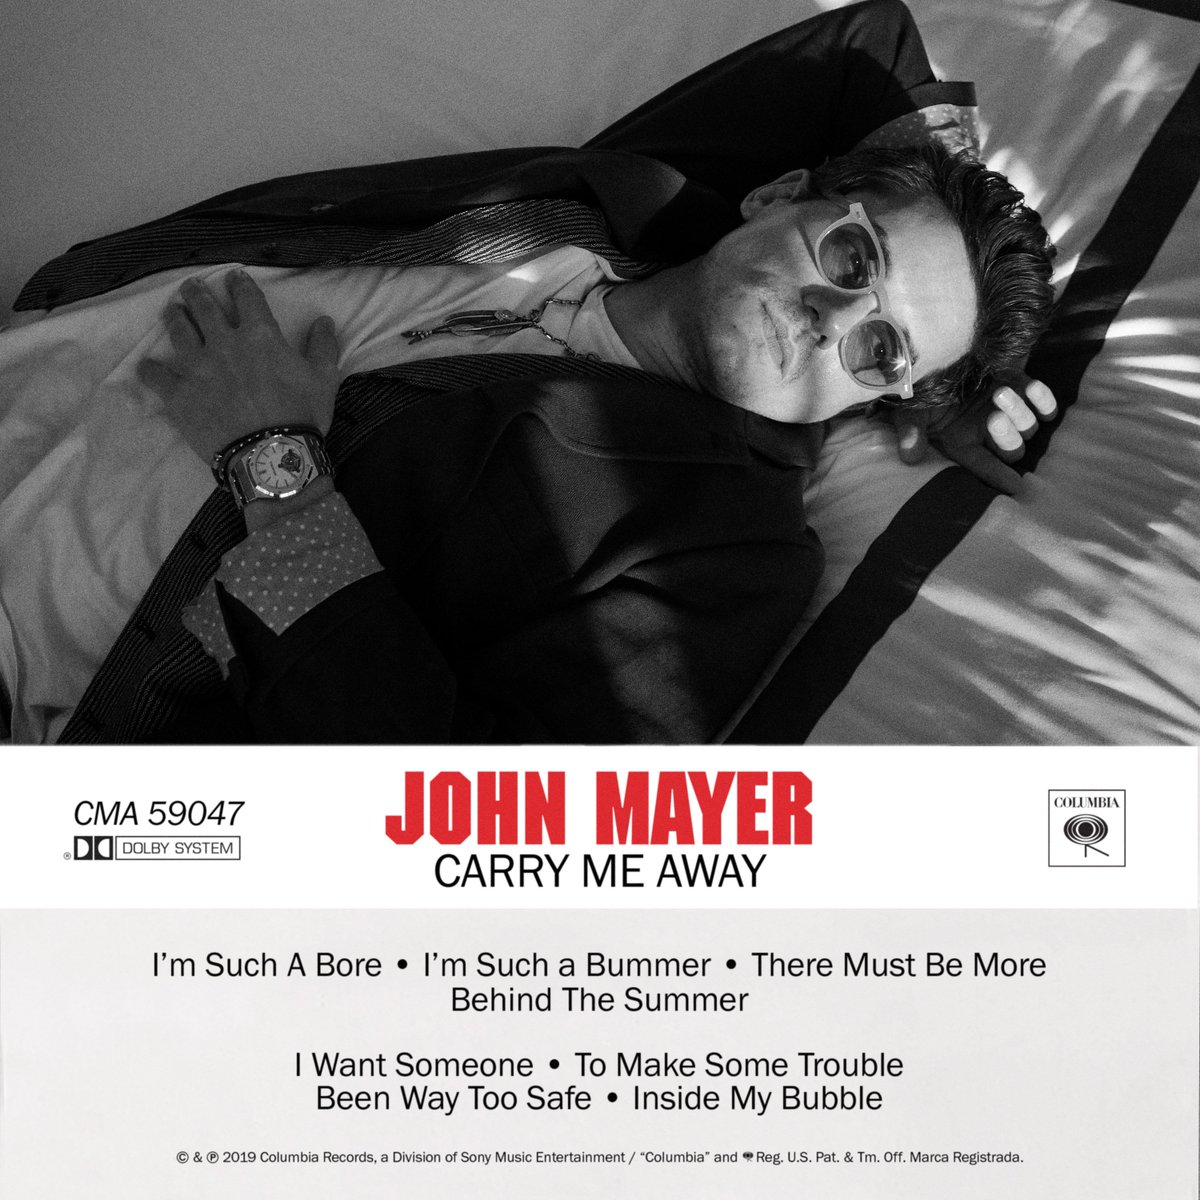 John Mayer (@JohnMayer) | Twitter